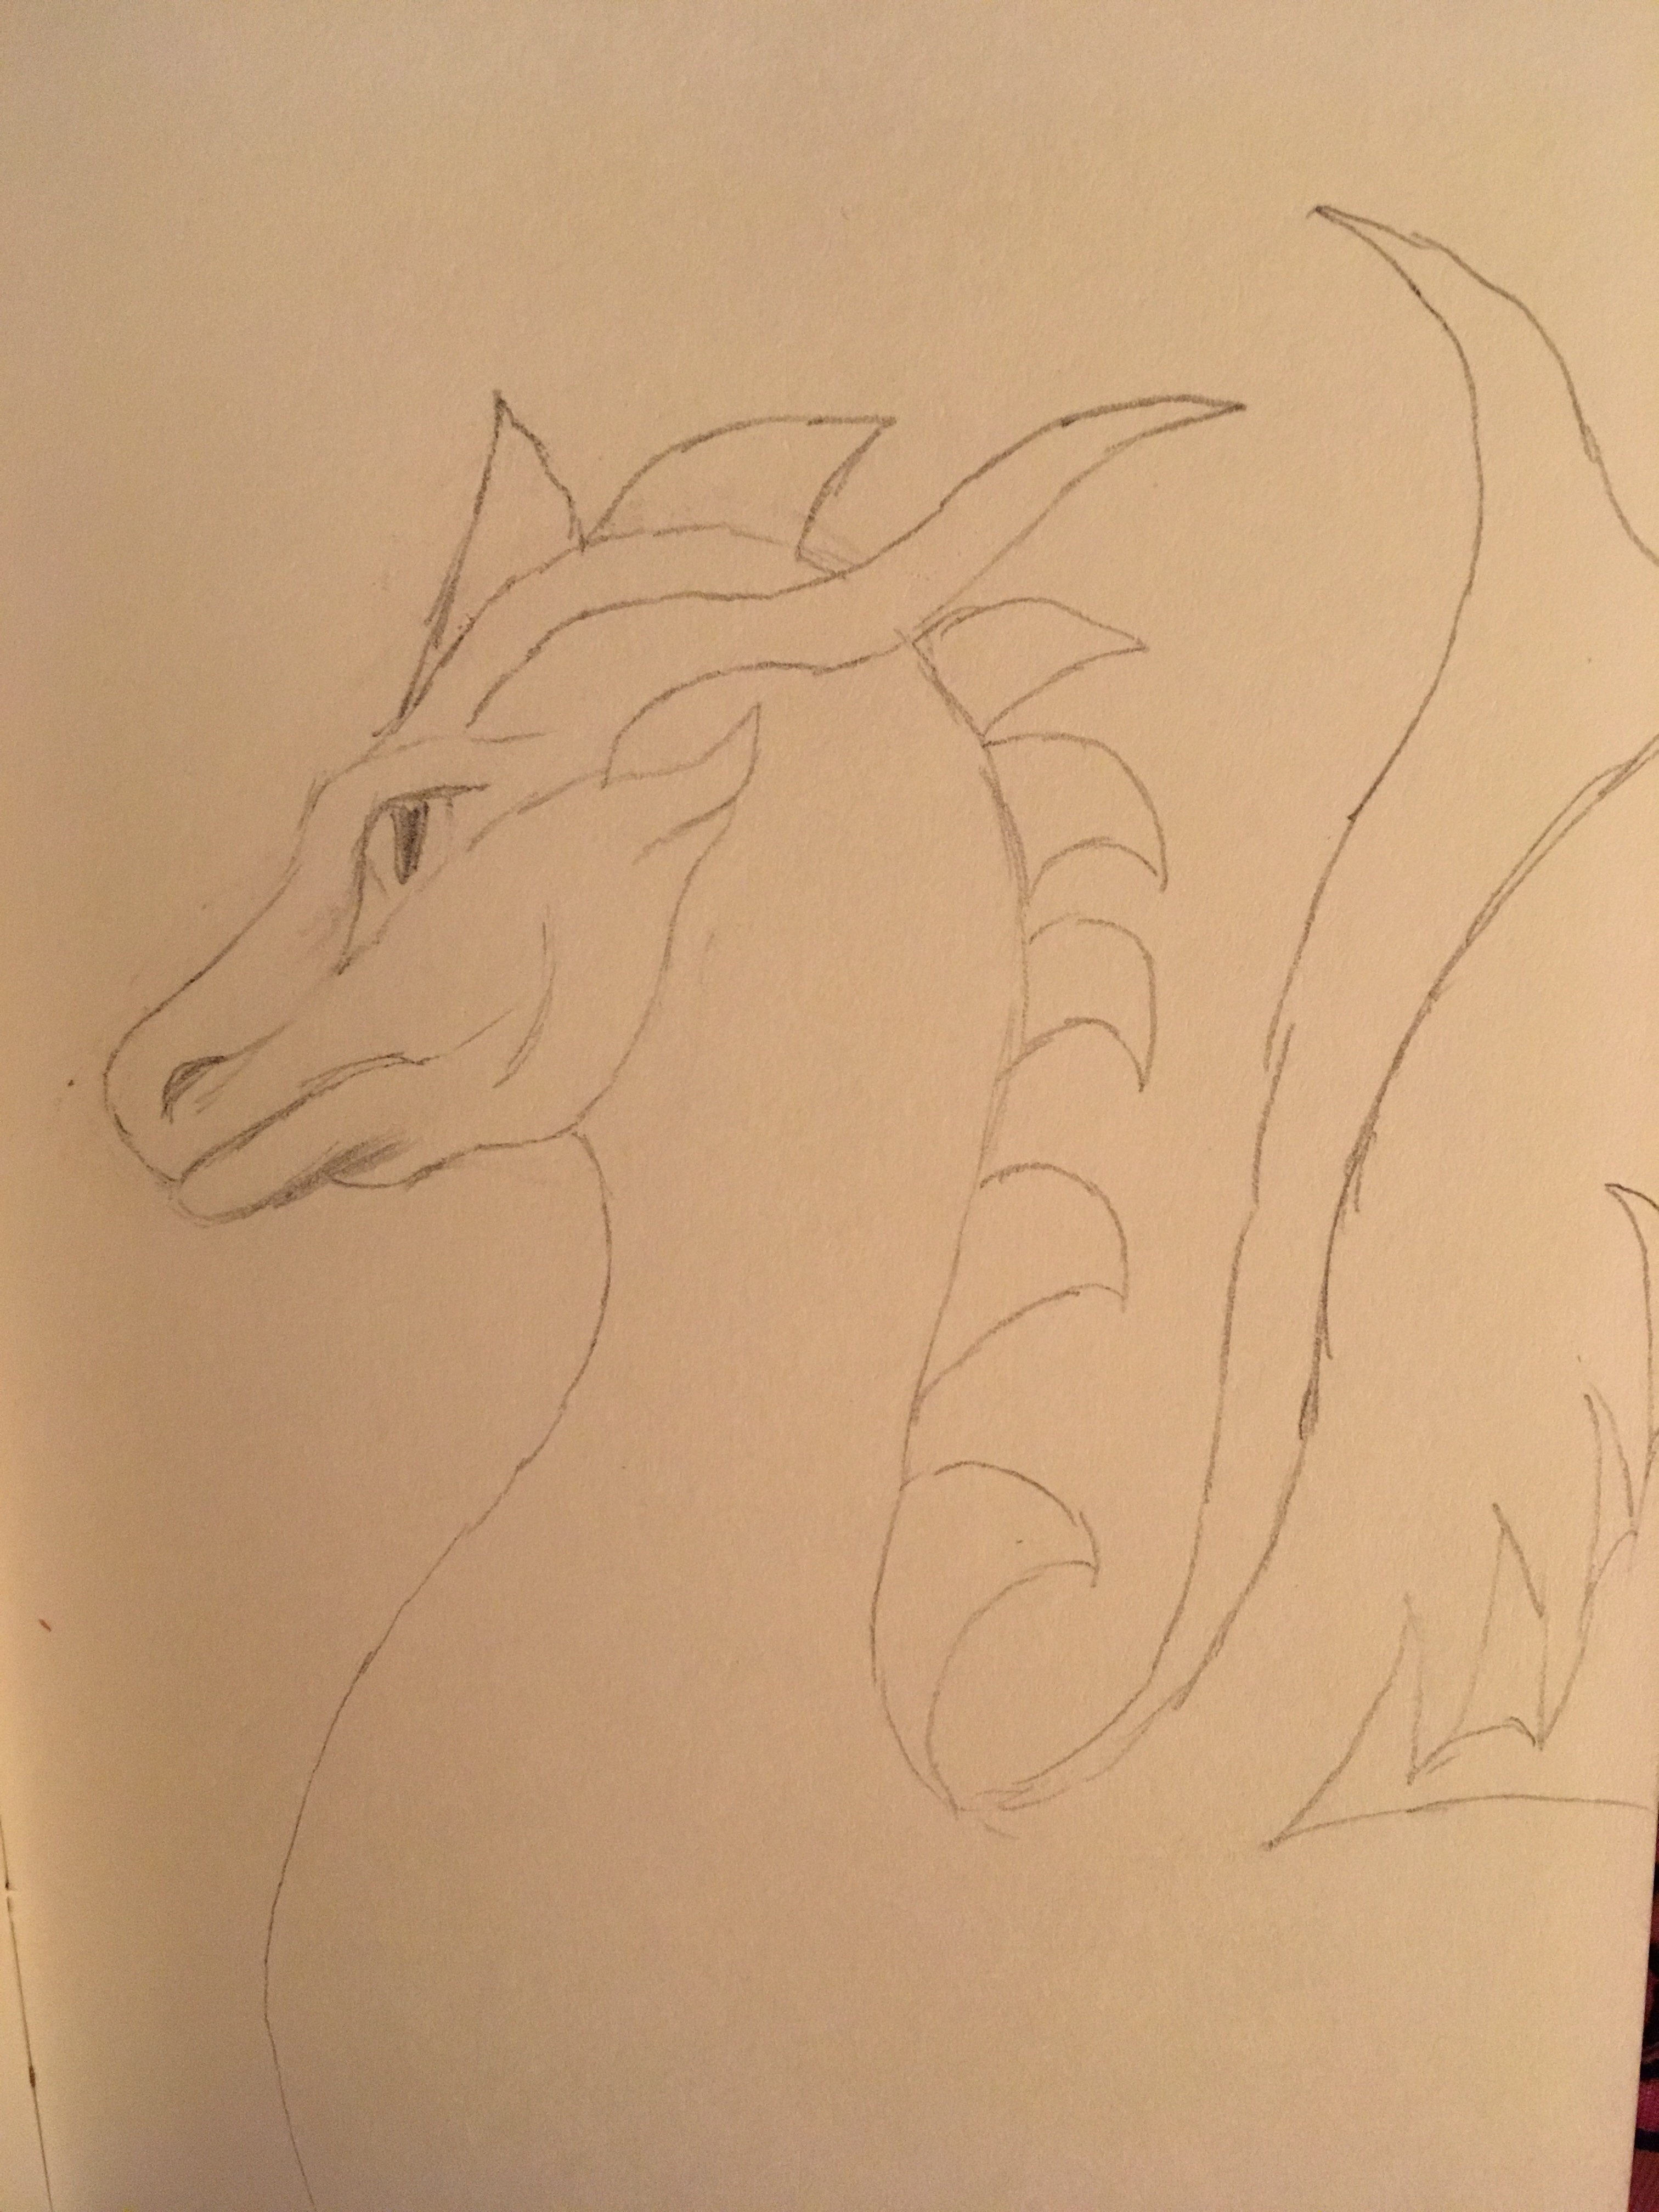 Dragon and pencil with old face but sketchy child like body